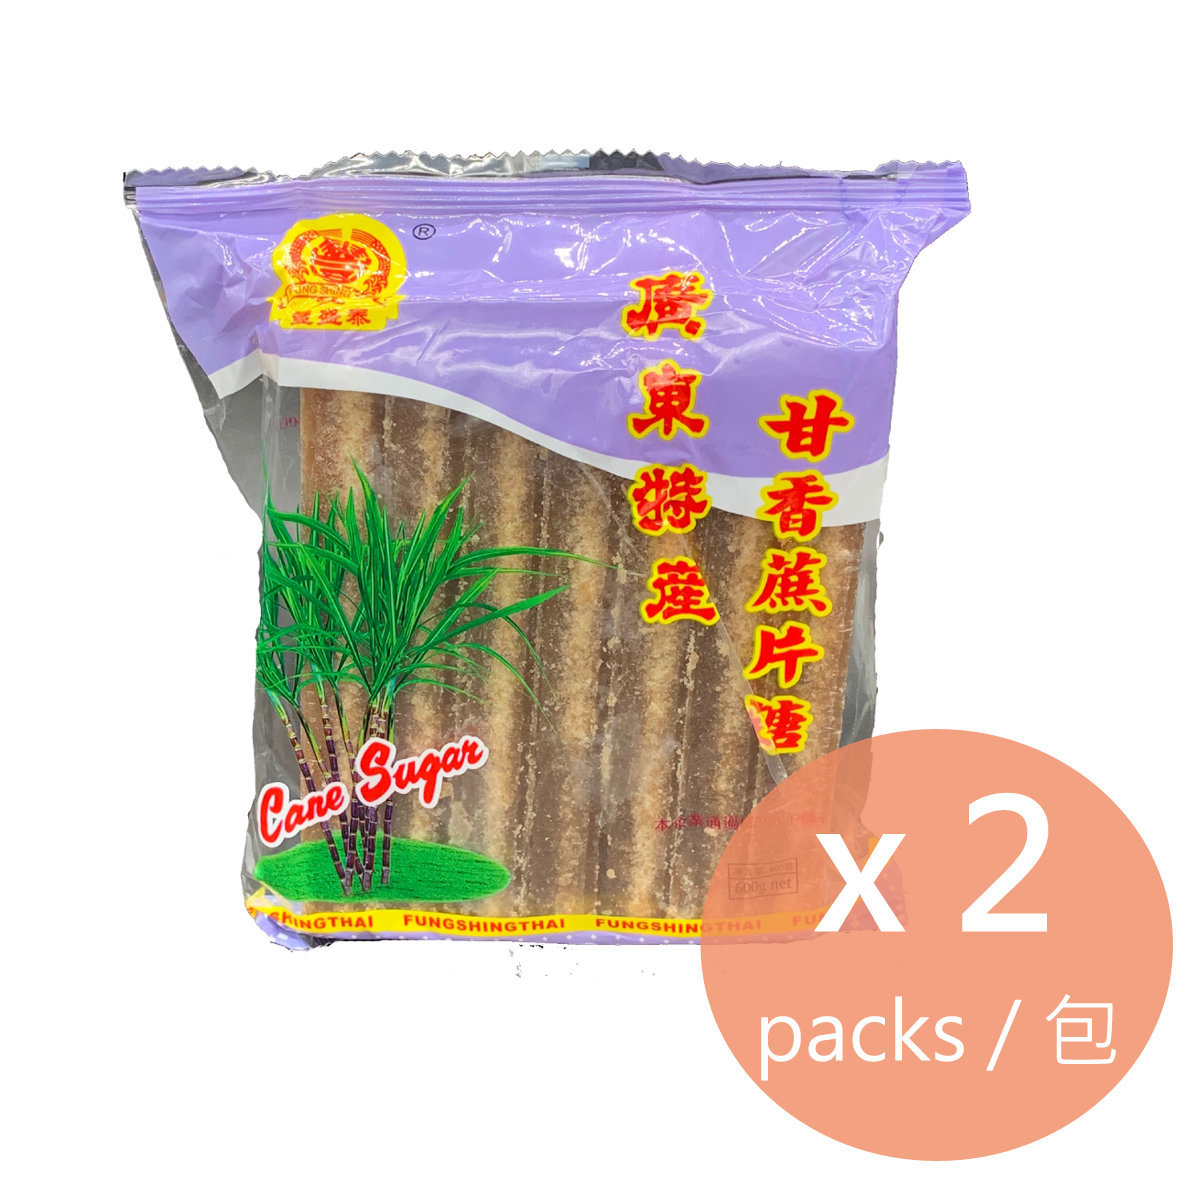 Fung Shing Thai Cane Sugar (2 packs)